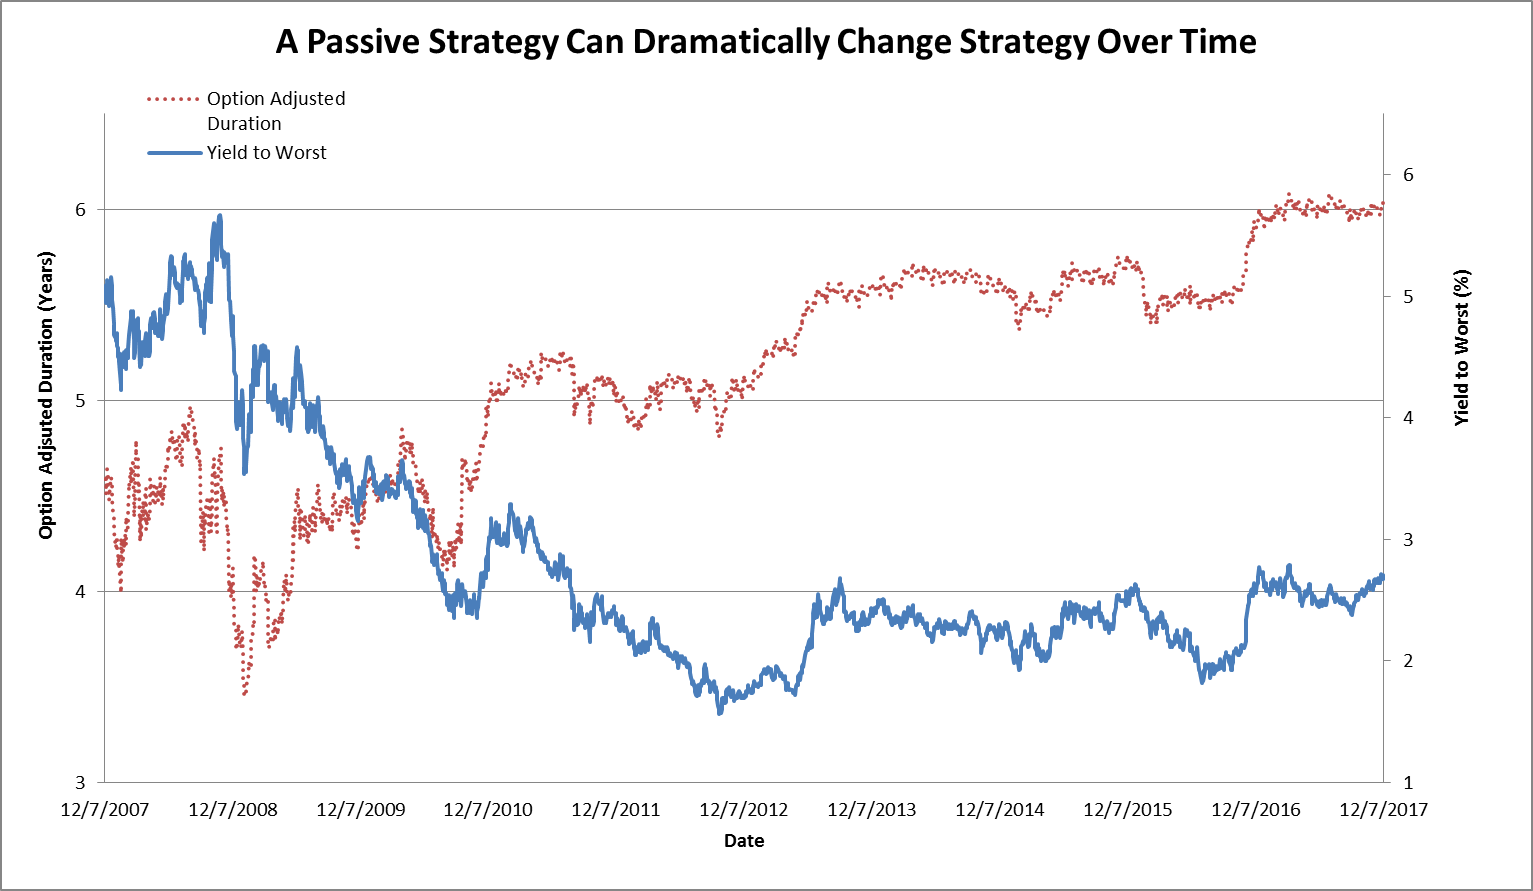 Passive Strategy Can Dramatically Change Strategy Over time